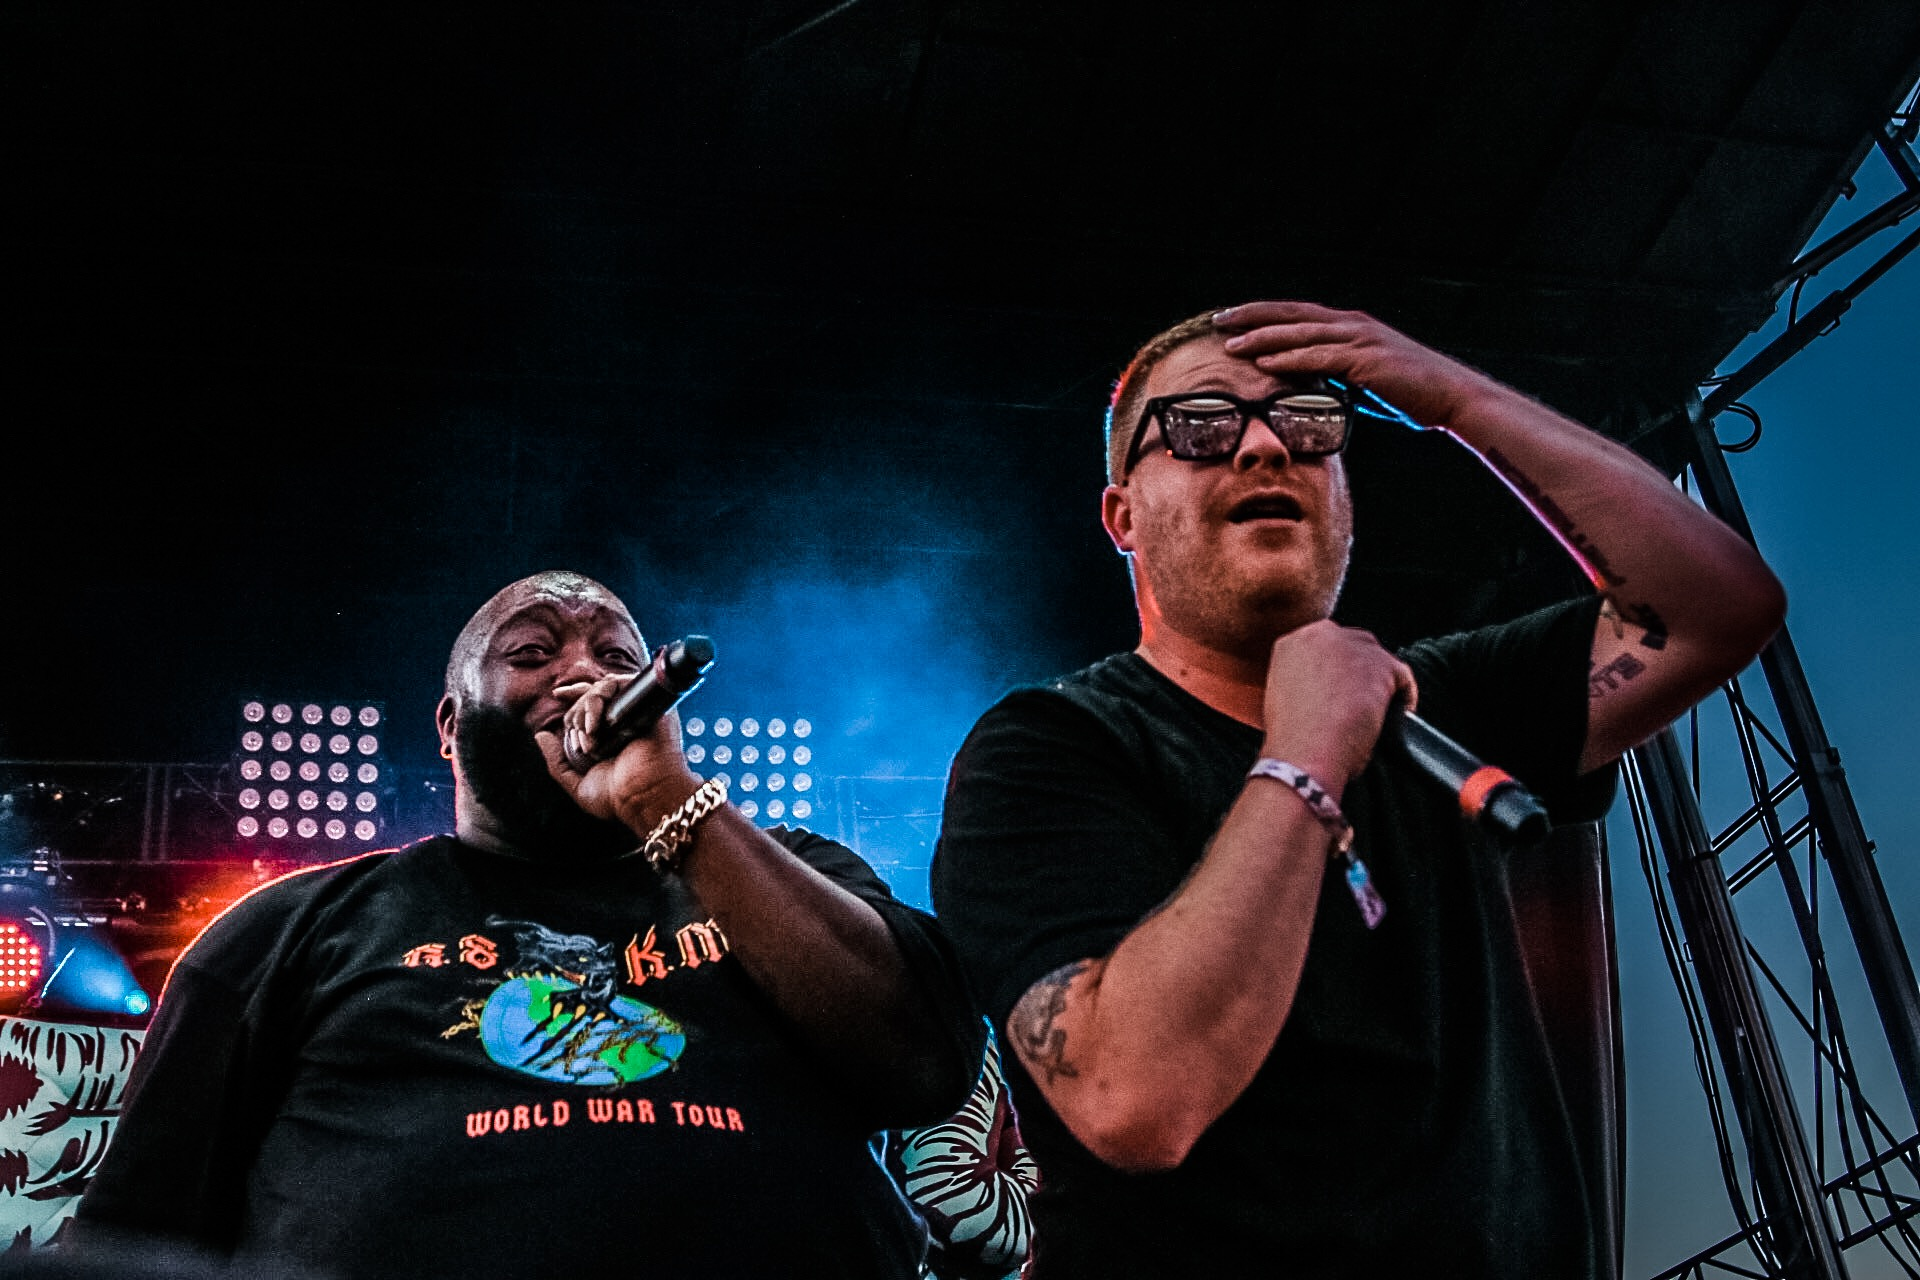 Run the Jewels begin teasing with mysterious countdown